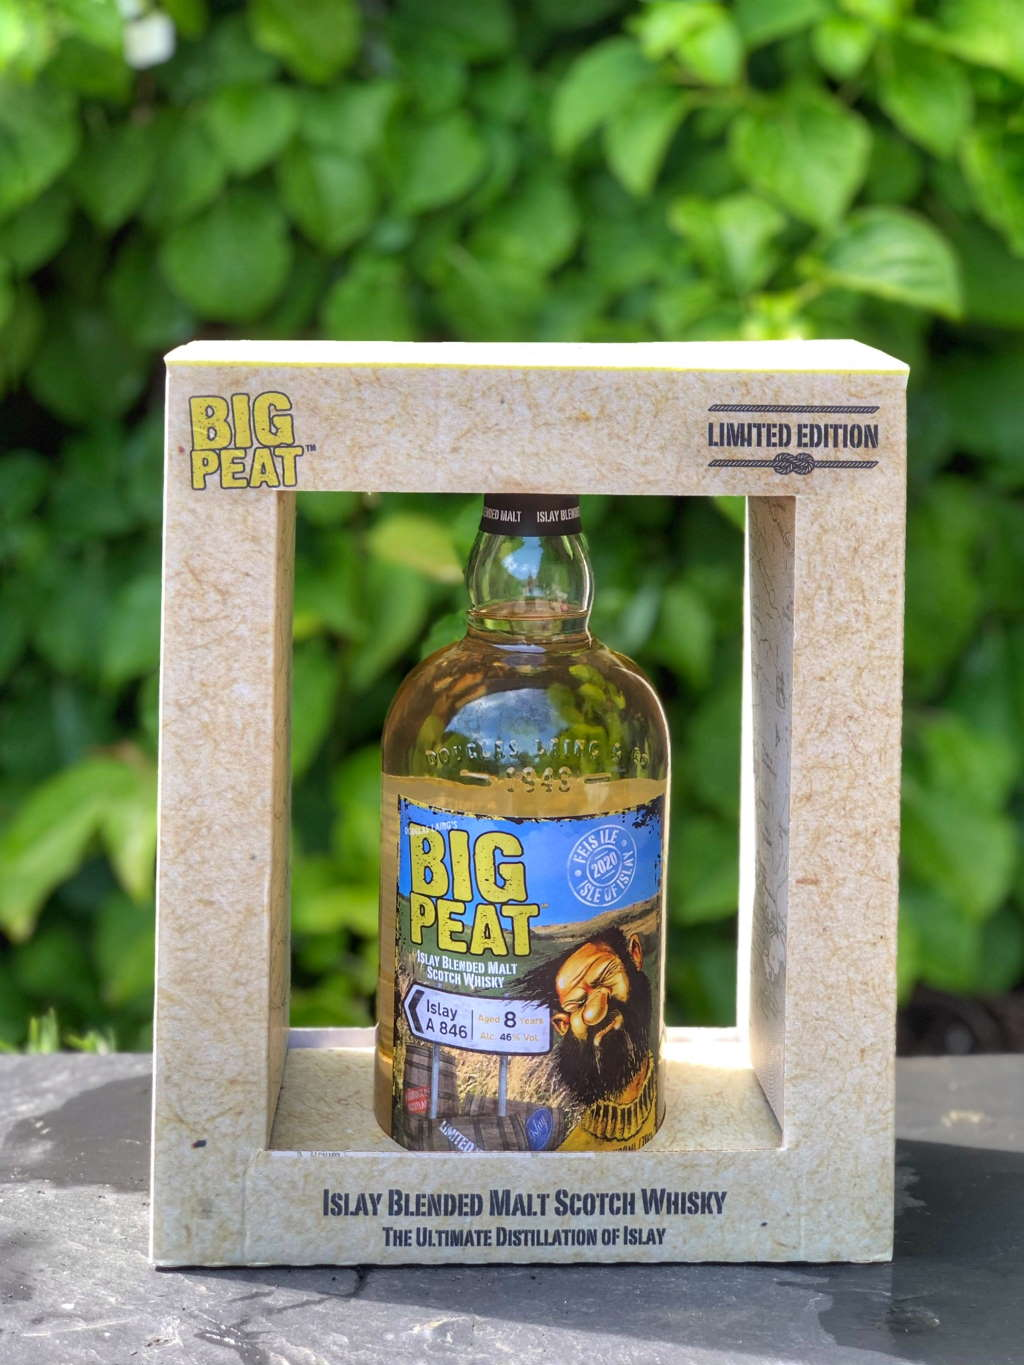 Big Peat 8 Years Old A846 Limited Edition.